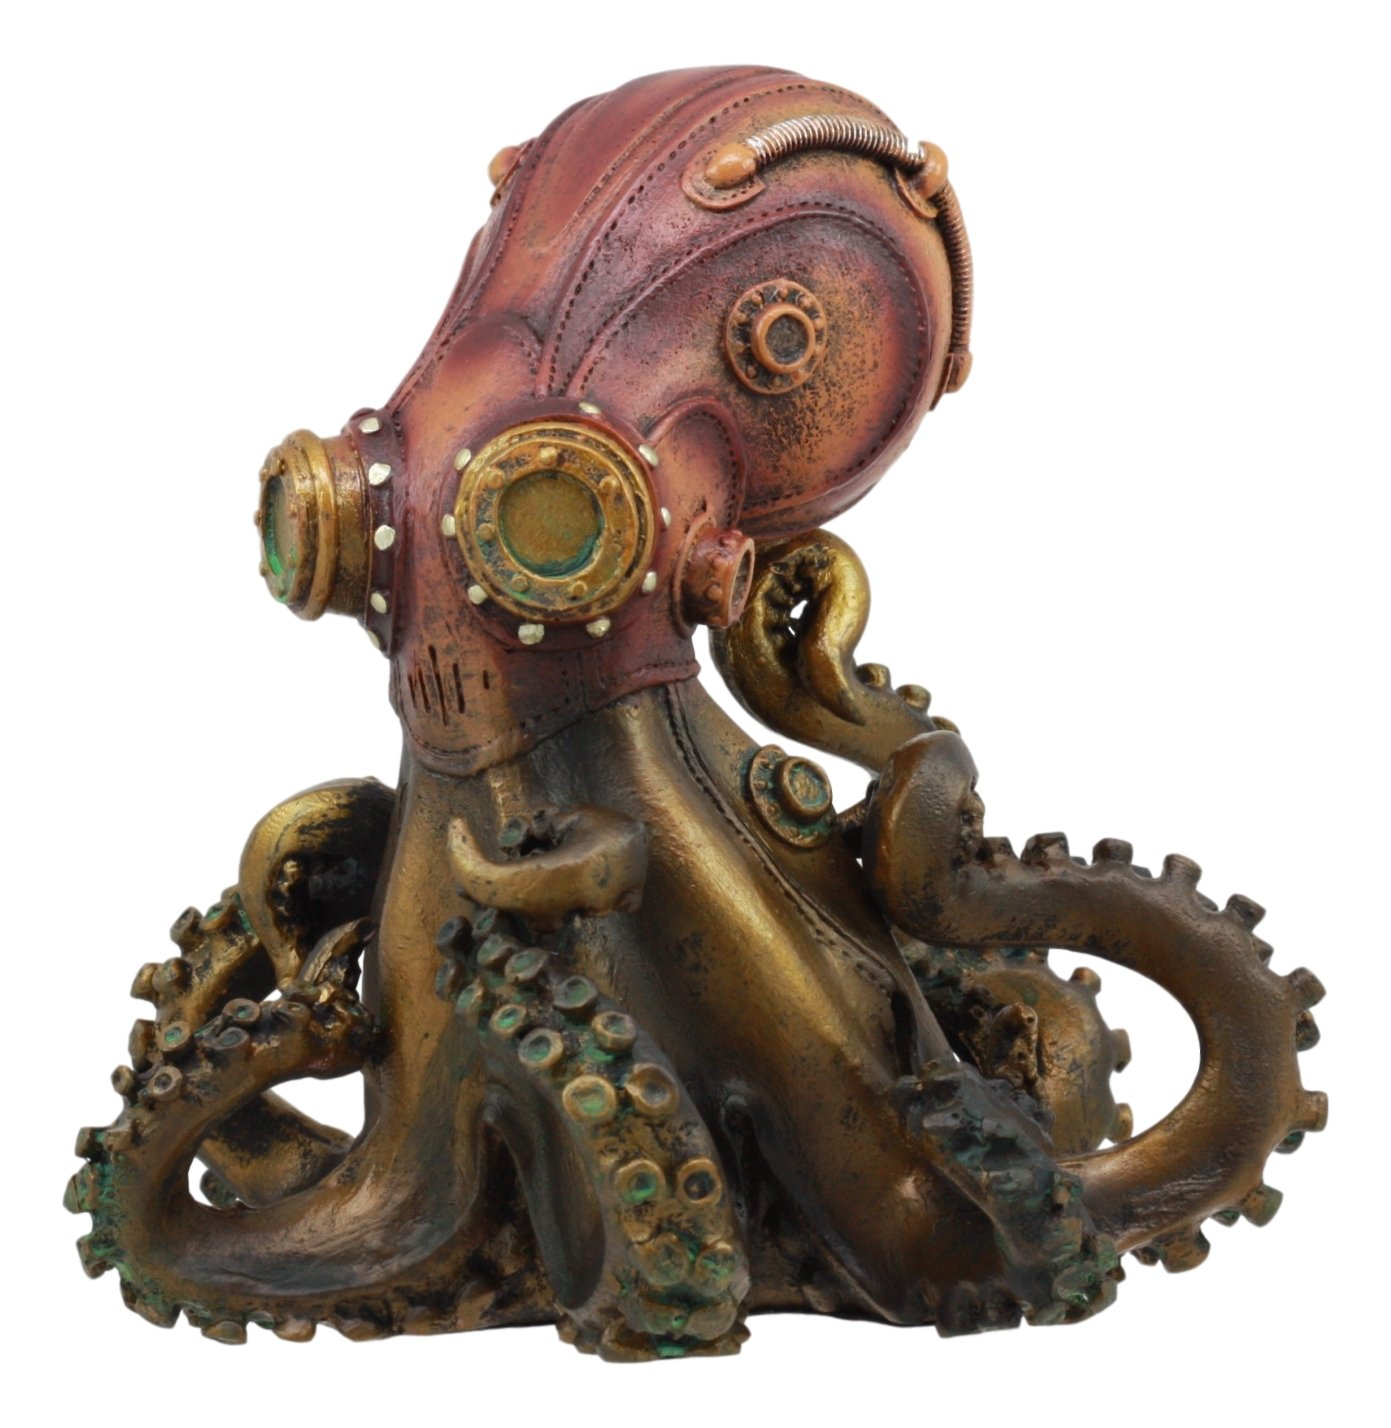 "Ebros Steampunk Giant Kraken Octopus Marauder Statue 5.5""Tall Deep Sea Military Cephalopod Unit Figurine Decor For Sci Fi Fantasy Lovers"